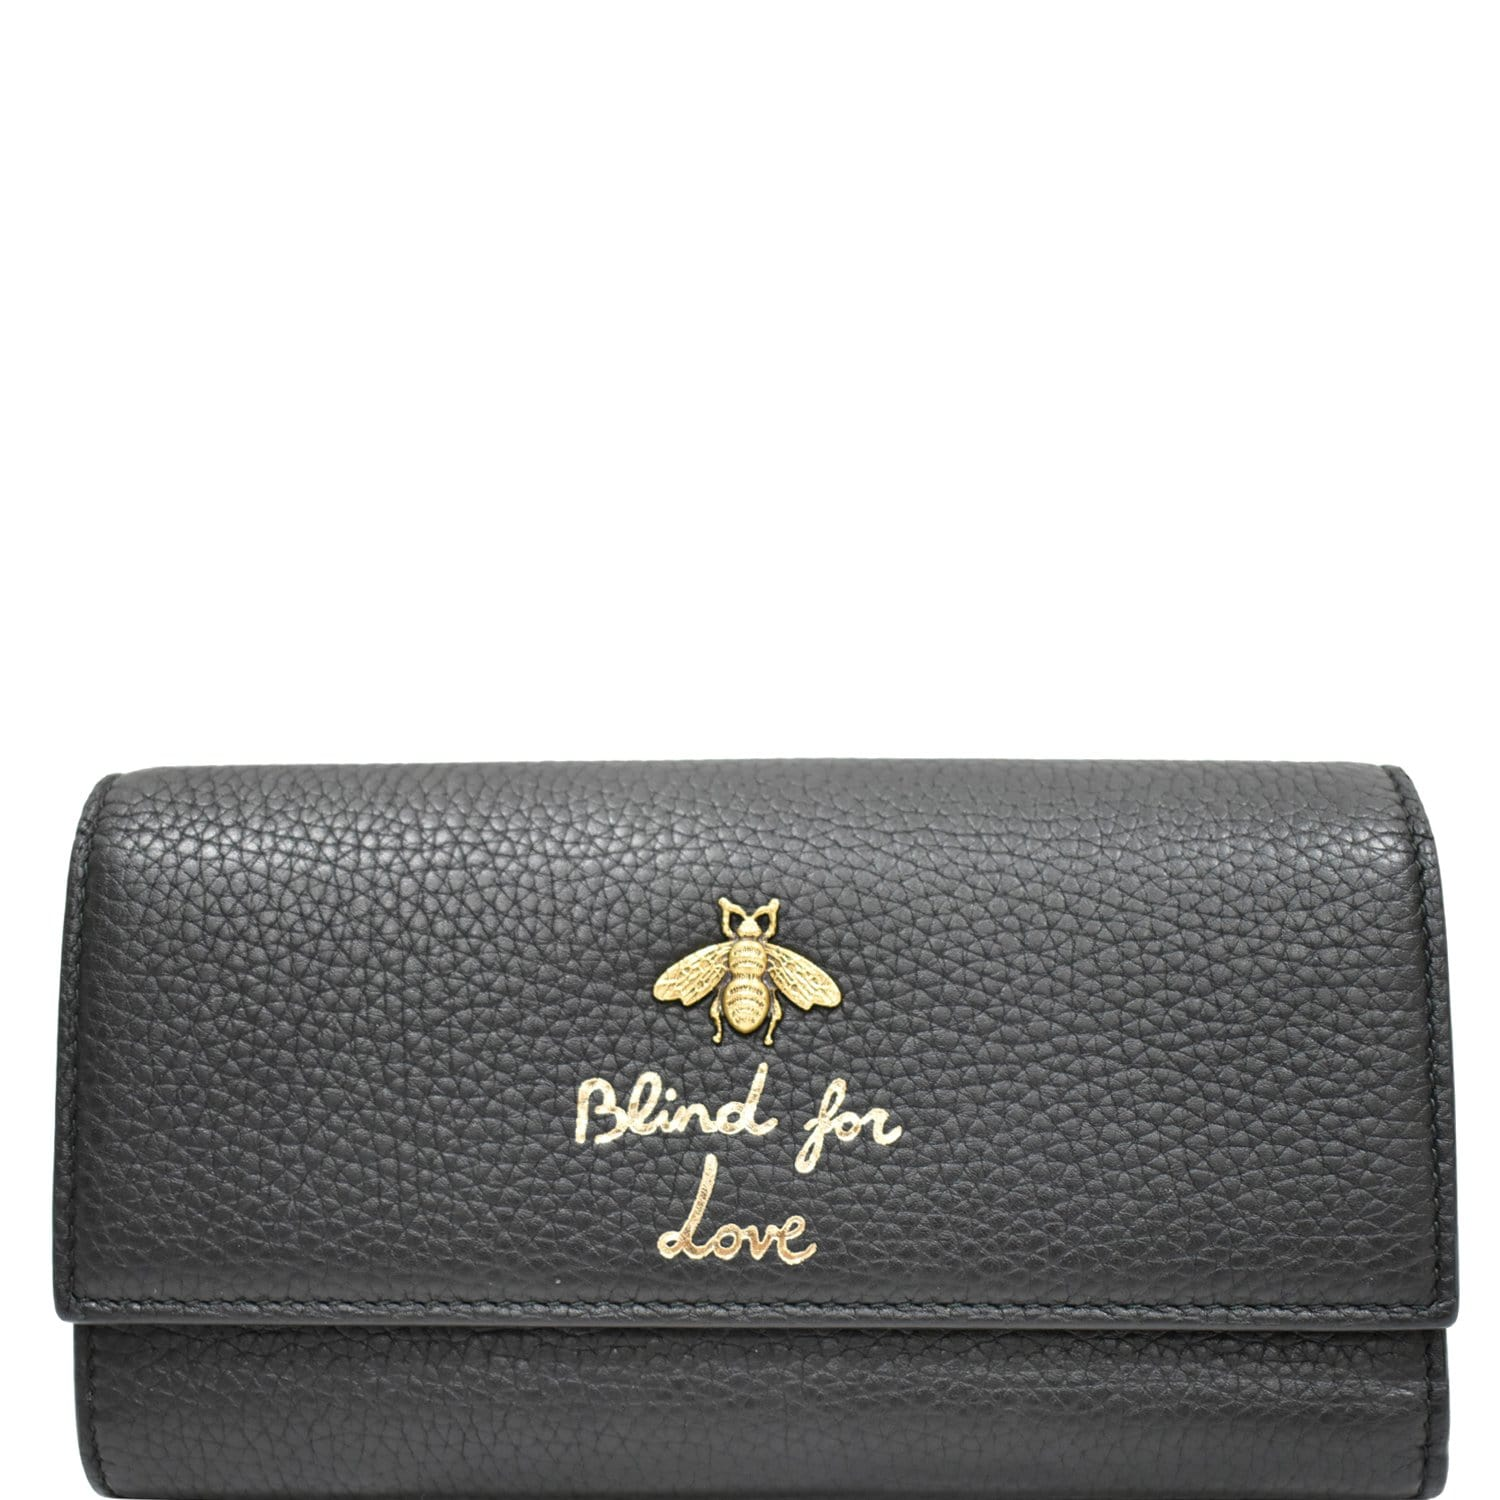 GUCCI Animalier Bee Blind For Love Leather Wallet Black 454070